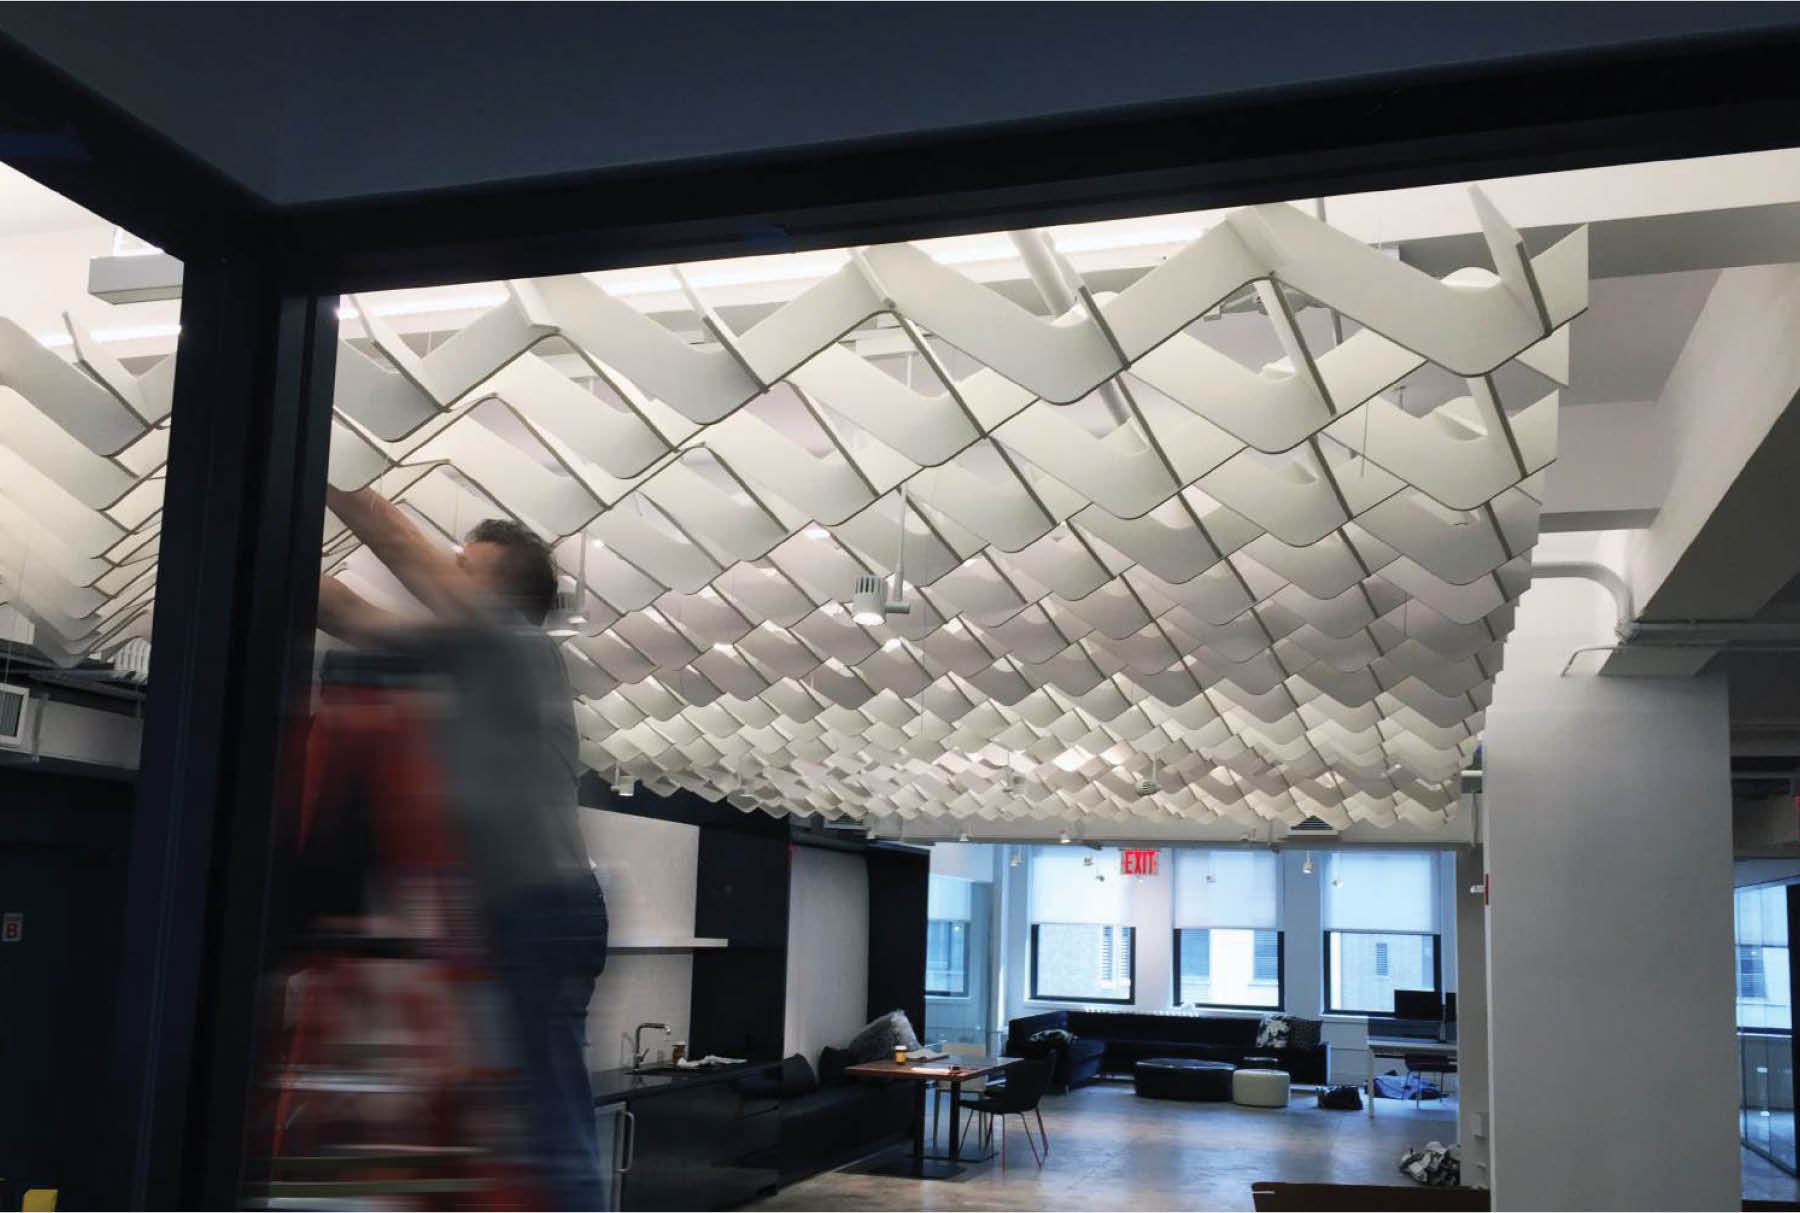 SoftGrid® Wave acoustical system